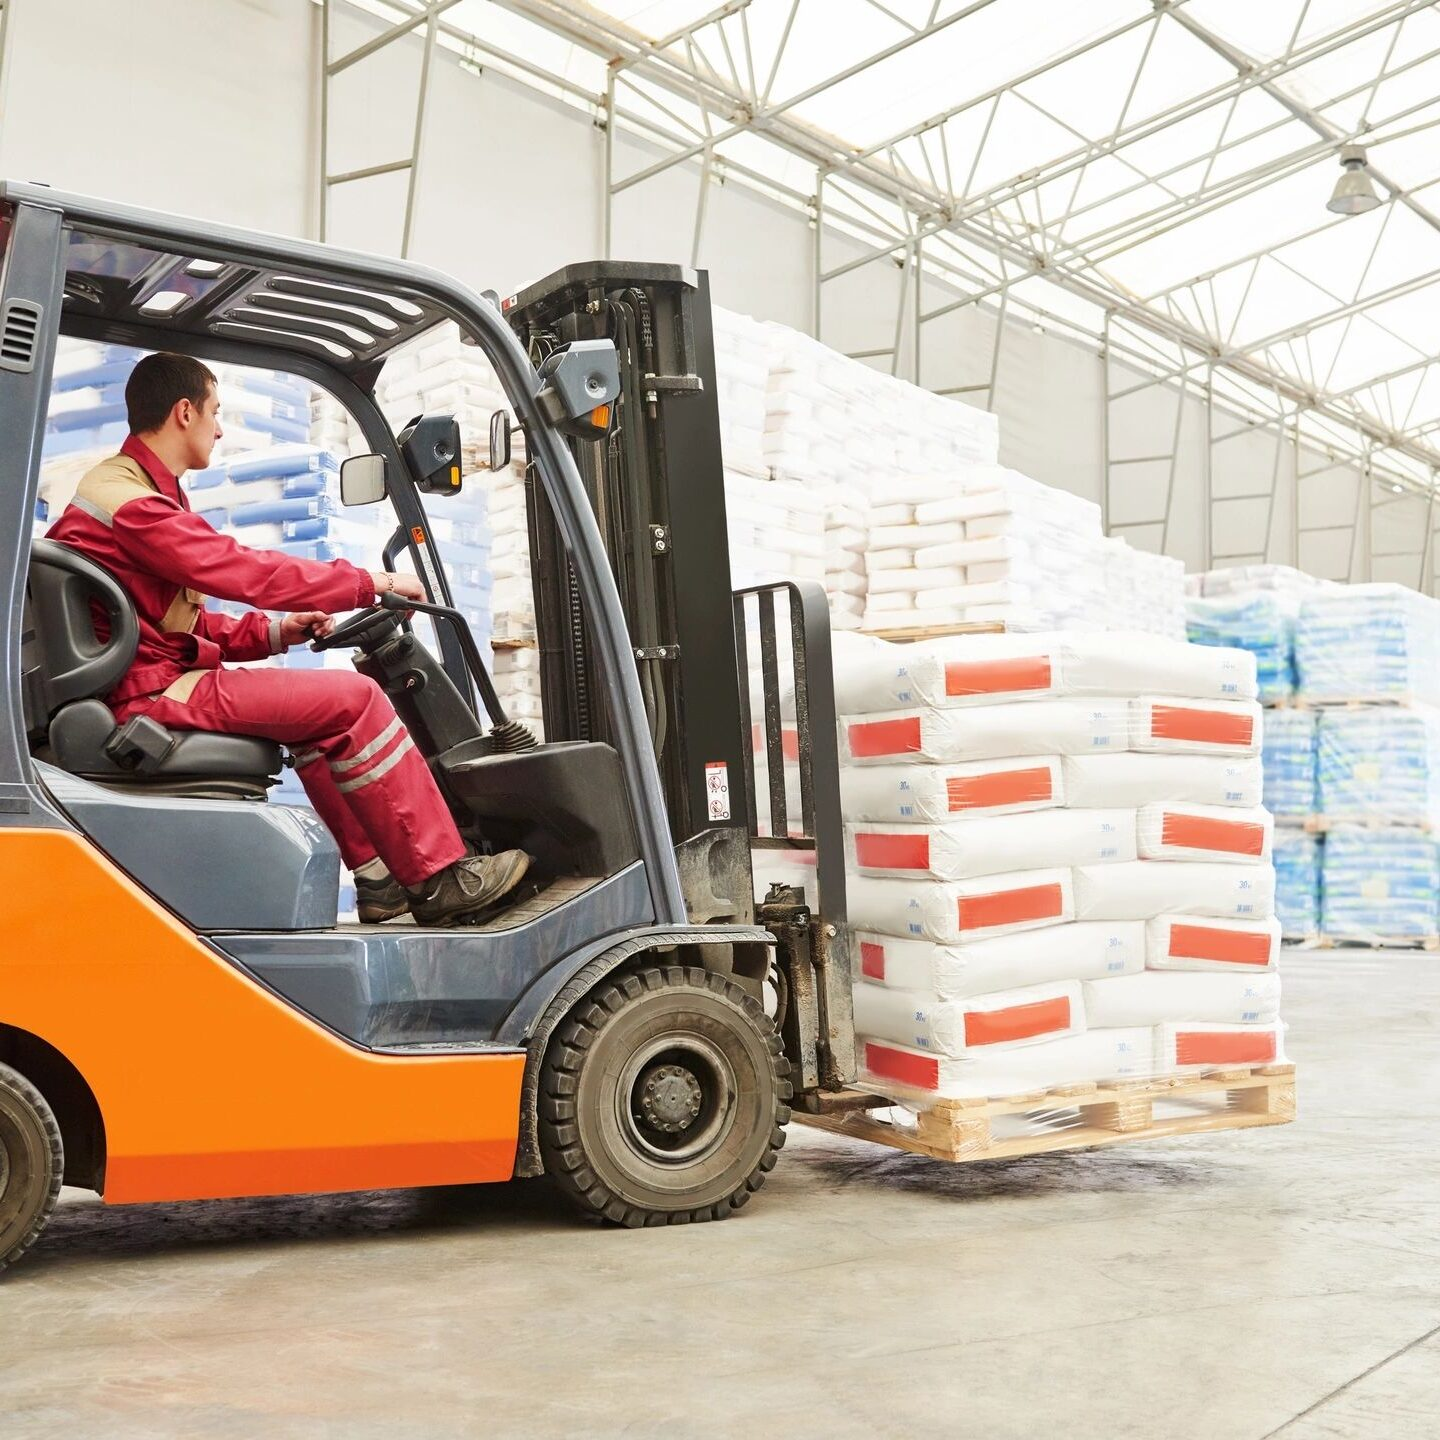 Temporary Staffing, Direct Hire, Contract to Hire, Warehouse Jobs at preeminence staffing resources